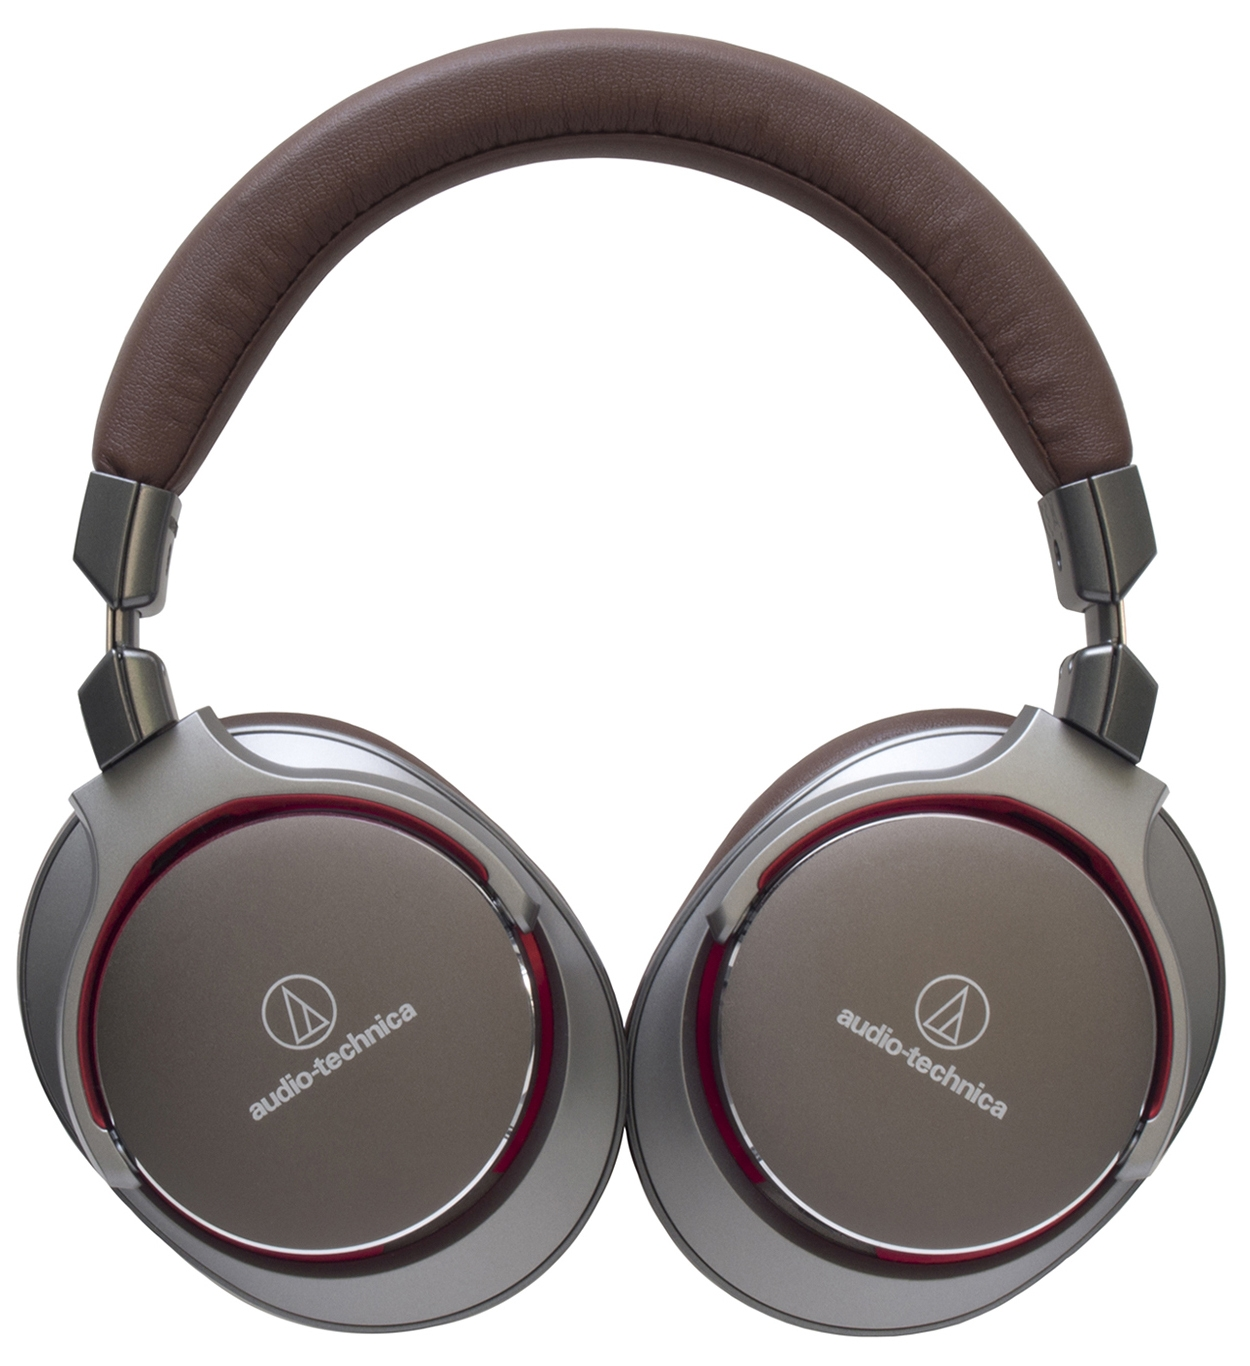 Audio techinca high resolution headphones athmsr7gm for True frequency jewelry reviews